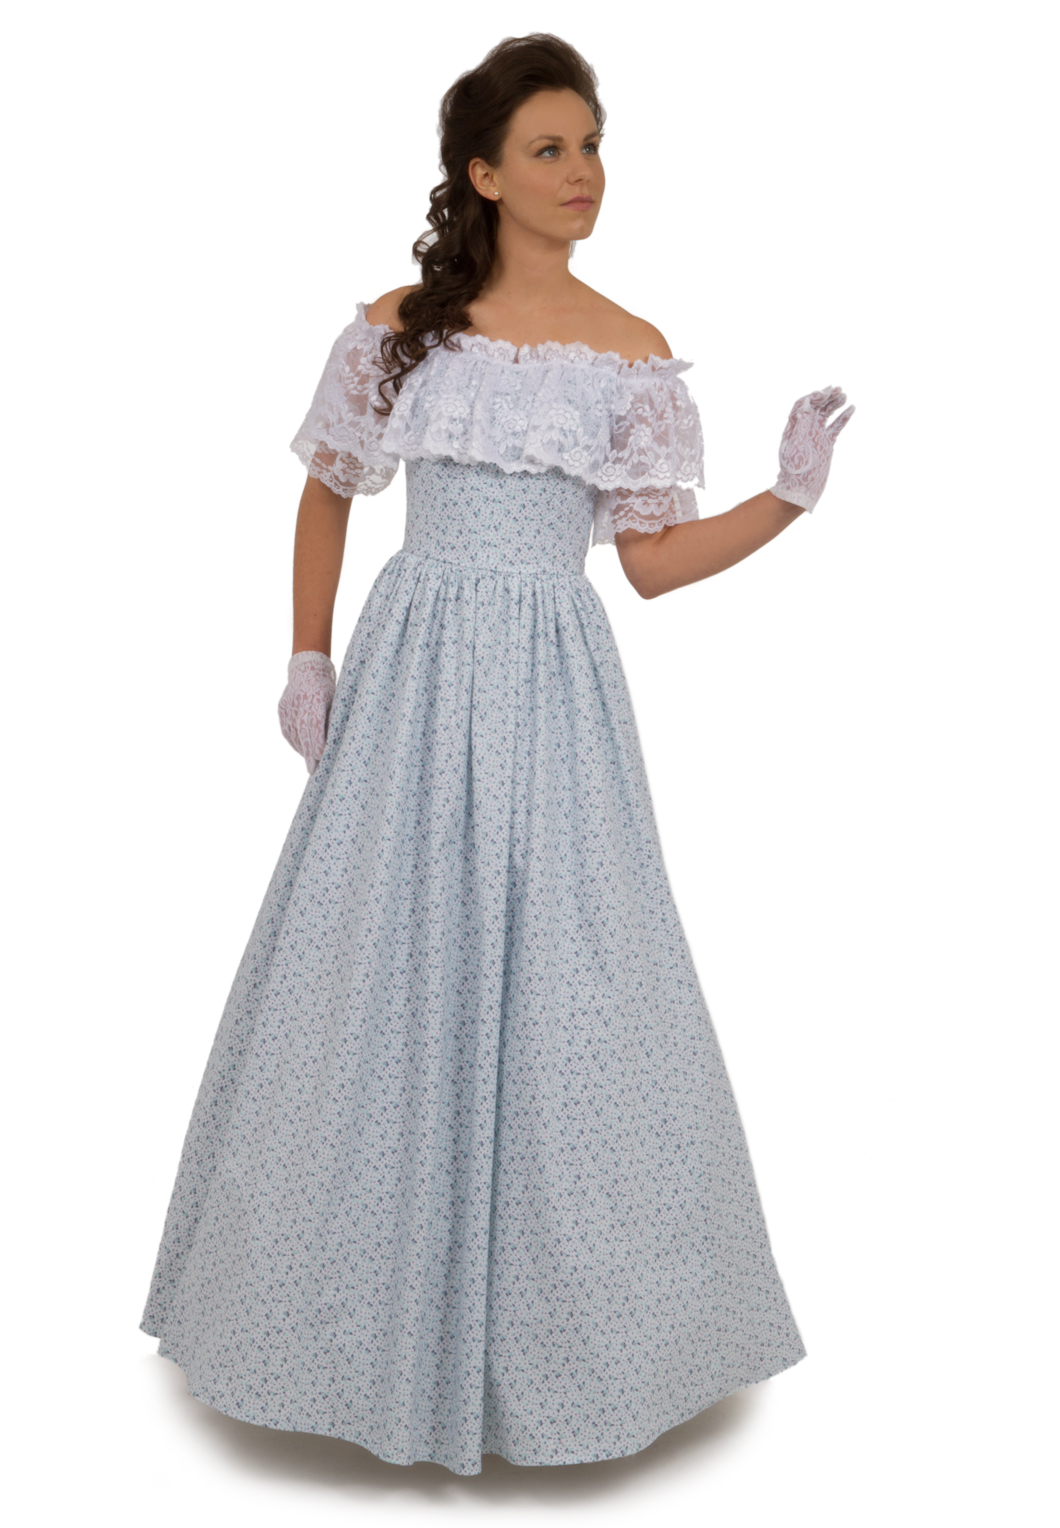 Victorian cotton gown recollections for Old west wedding dresses